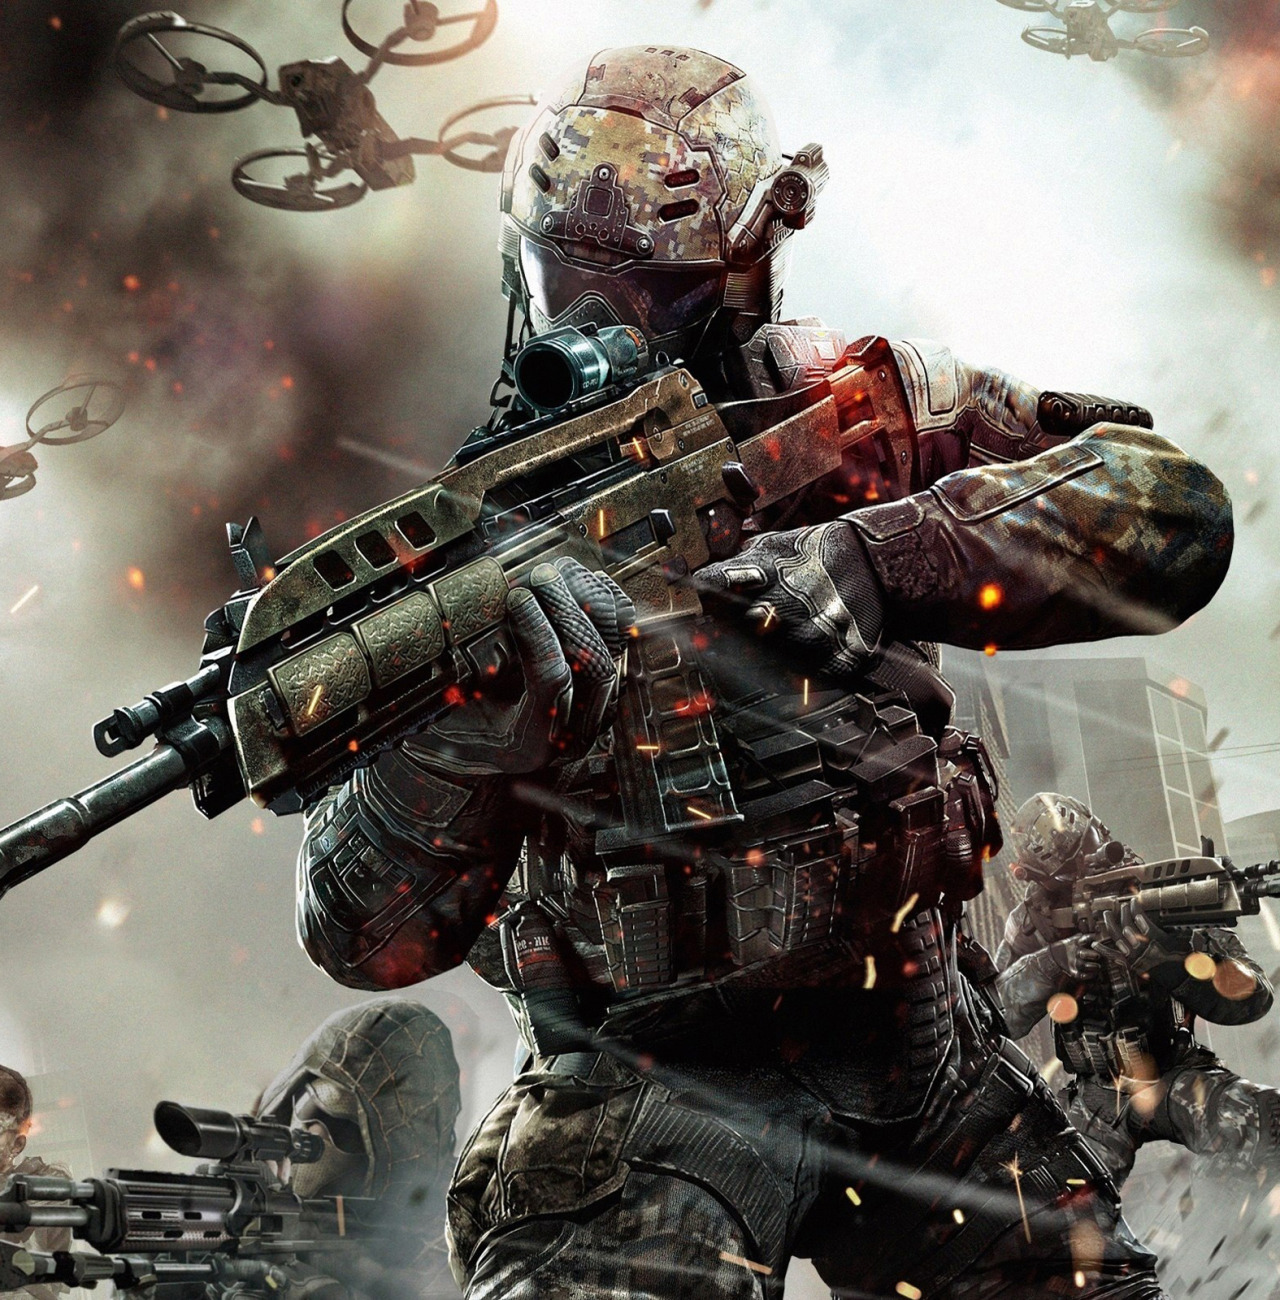 gamefreaksnz:  Black Ops II Revolution DLC hits PS3, PC  Activision and Treyarch today announced that Revolution, the first DLC for Call of Duty: Black Ops II, is available now for PlayStation 3 and Windows PC.